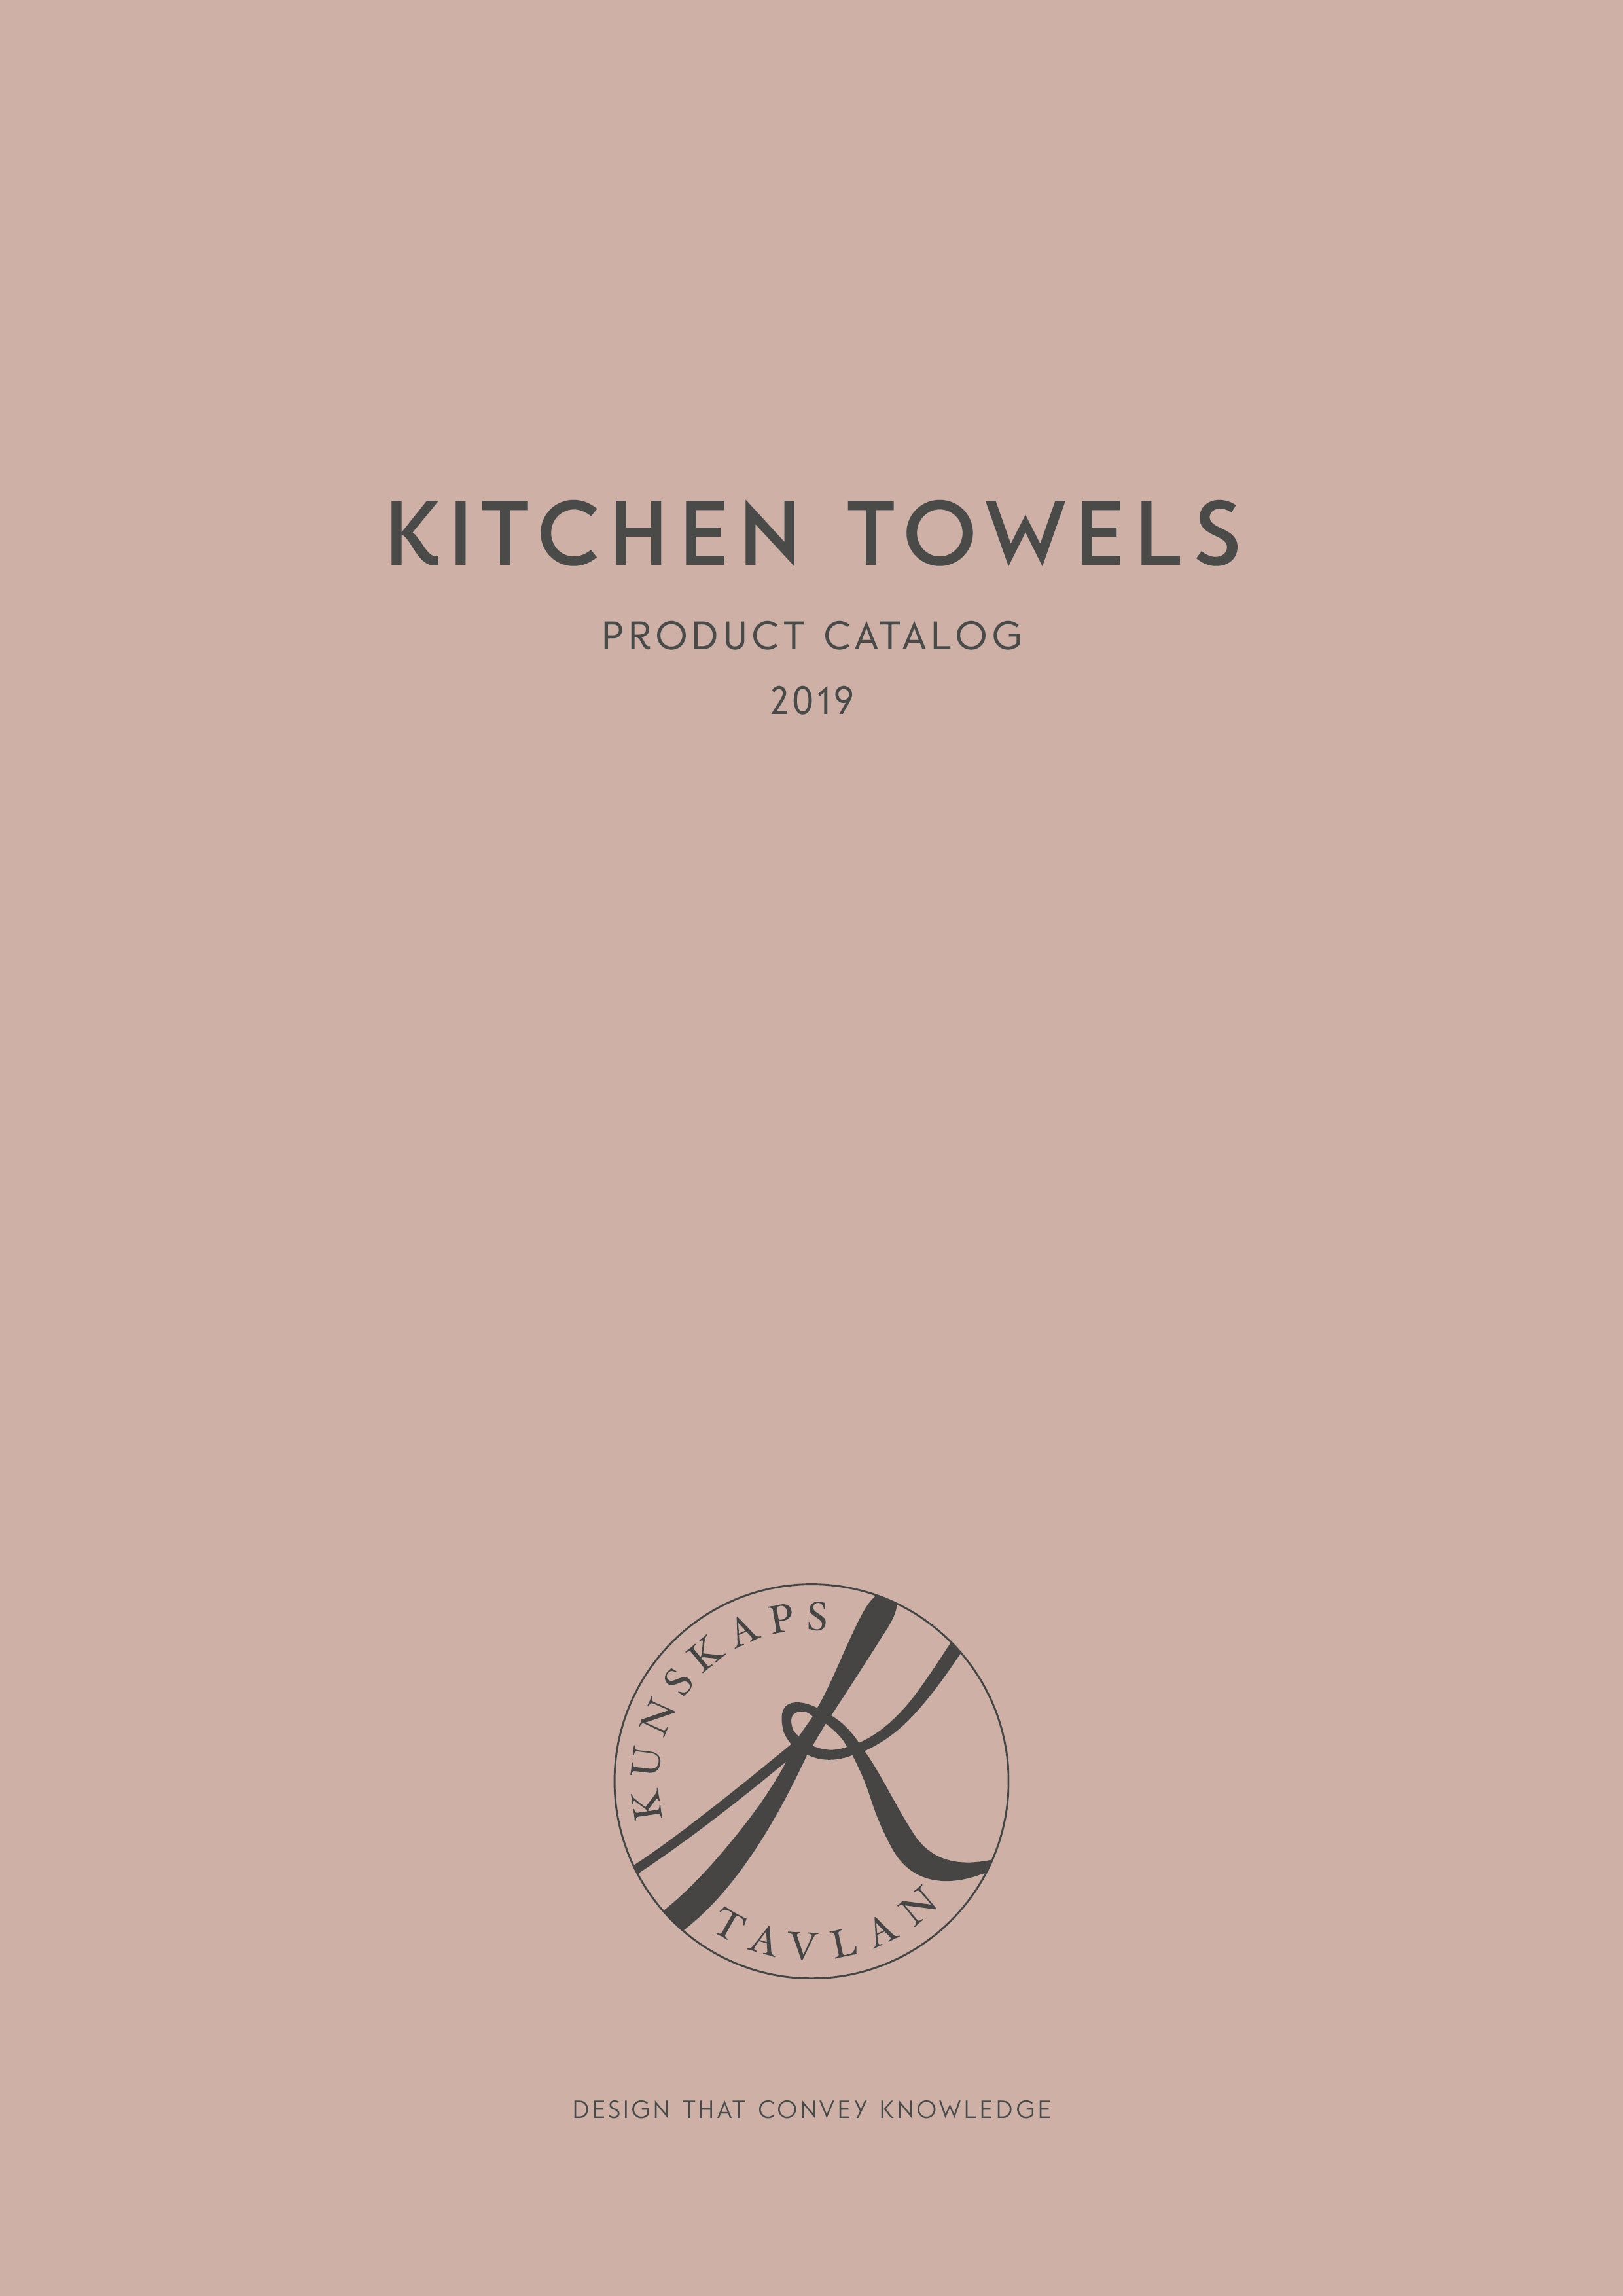 Kunskapstavlan Product Catalog Kitchen Towels